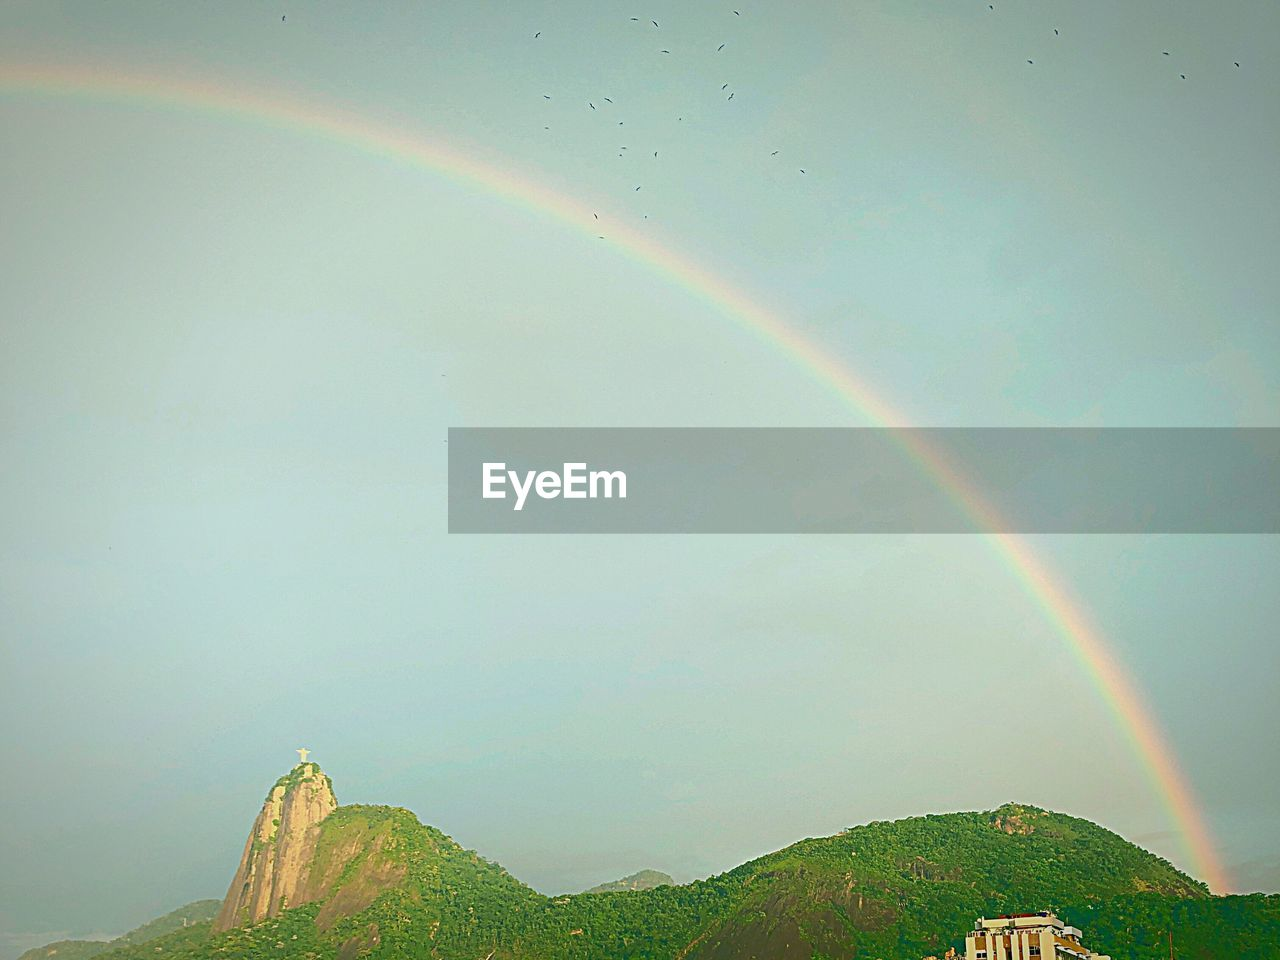 rainbow, beauty in nature, scenics - nature, tranquility, tranquil scene, nature, idyllic, no people, multi colored, sky, day, double rainbow, environment, mountain, non-urban scene, landscape, green color, plant, outdoors